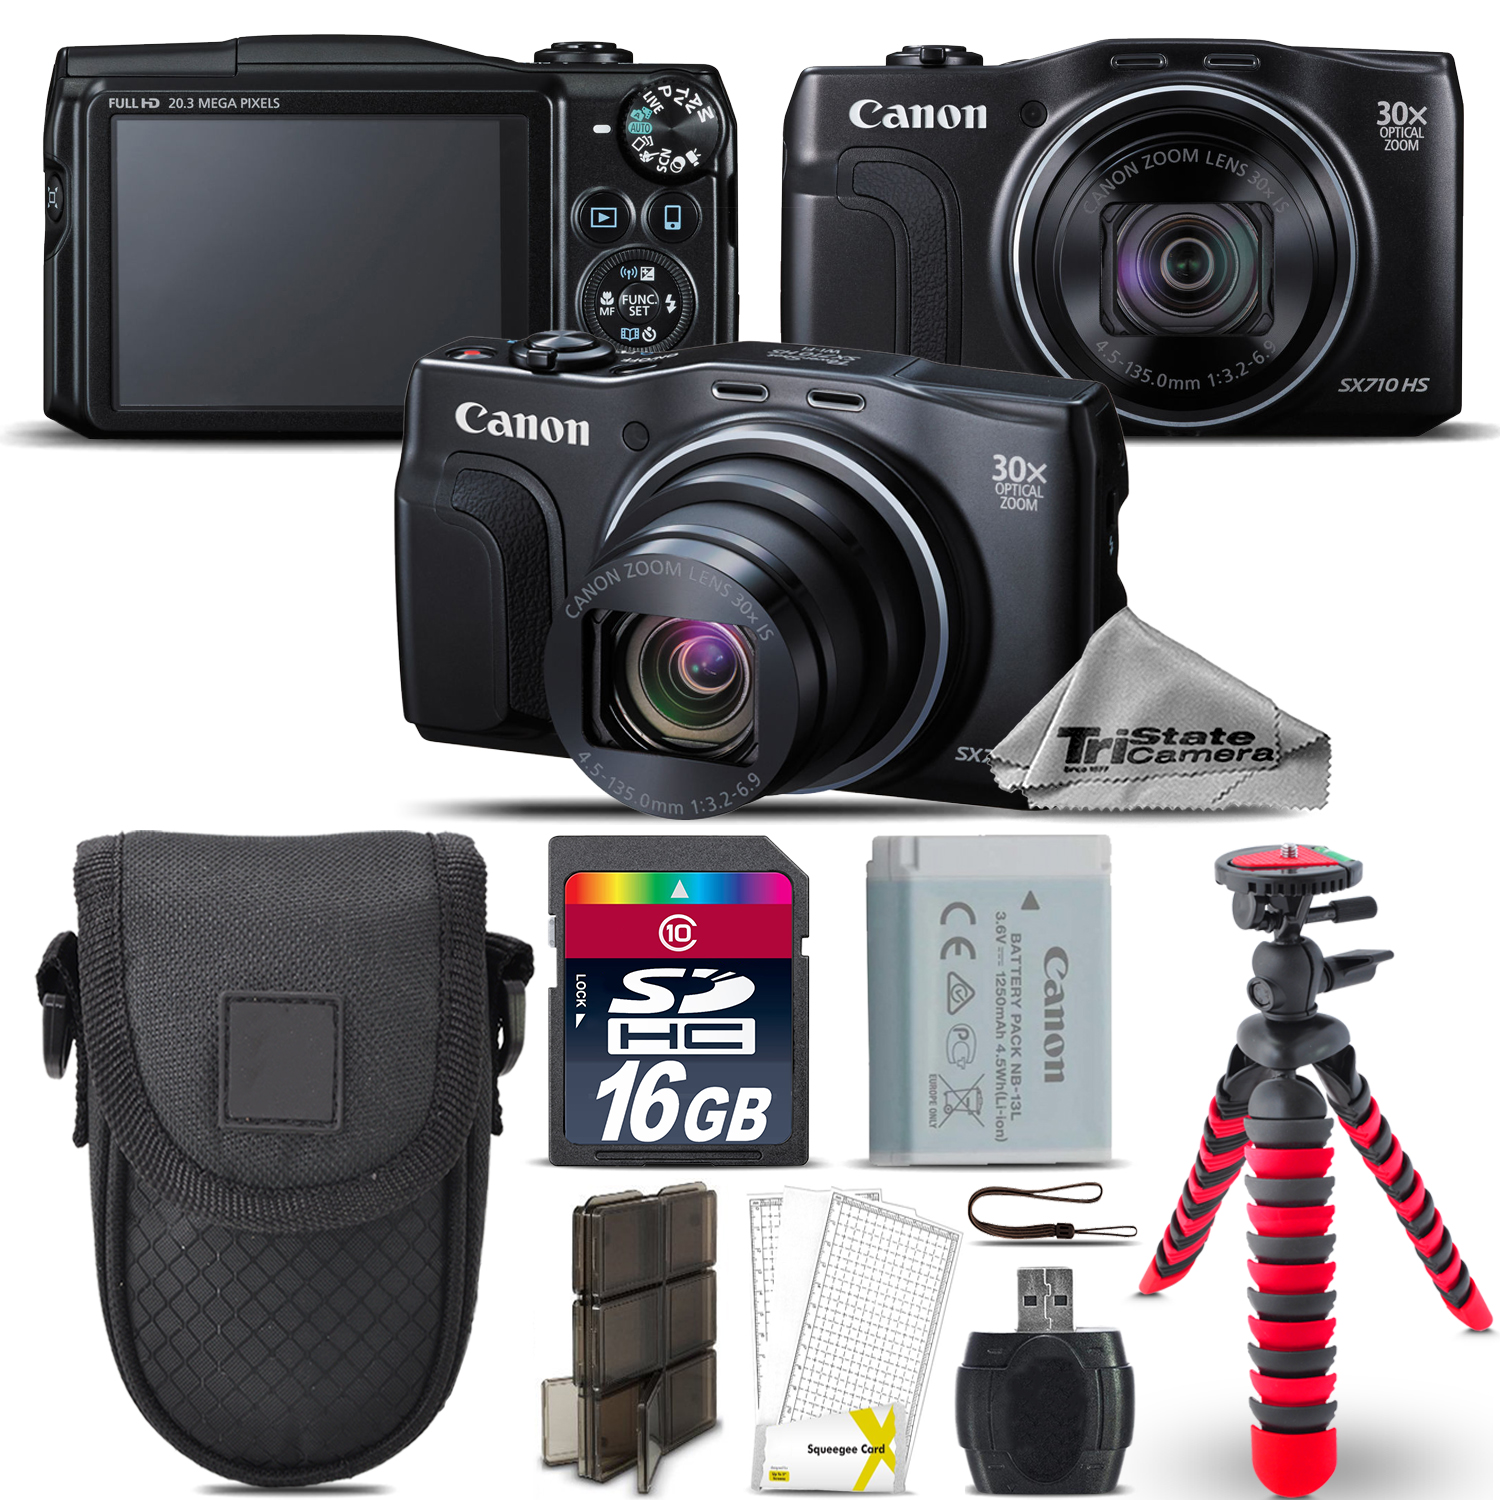 PowerShot SX710 HS Point & Shoot Camera + Spider Tripod + Case - 16GB Kit *FREE SHIPPING*